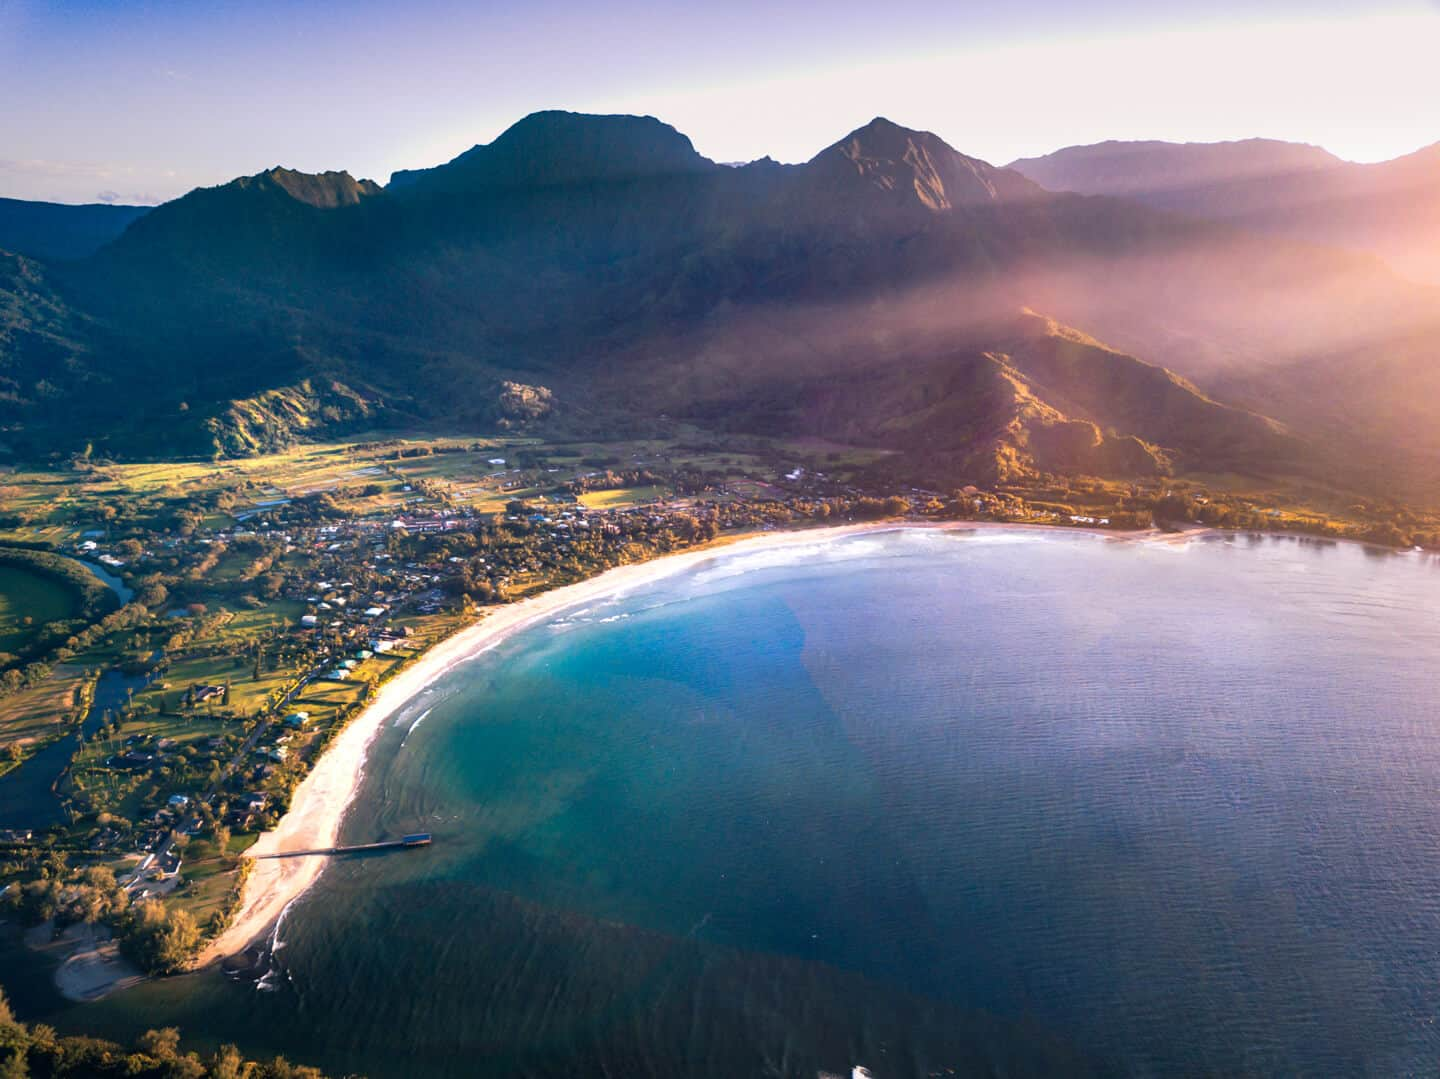 Find a spot on the perfect-crescent beach of Hanalei Bay to enjoy a legendary Kauai sunset.